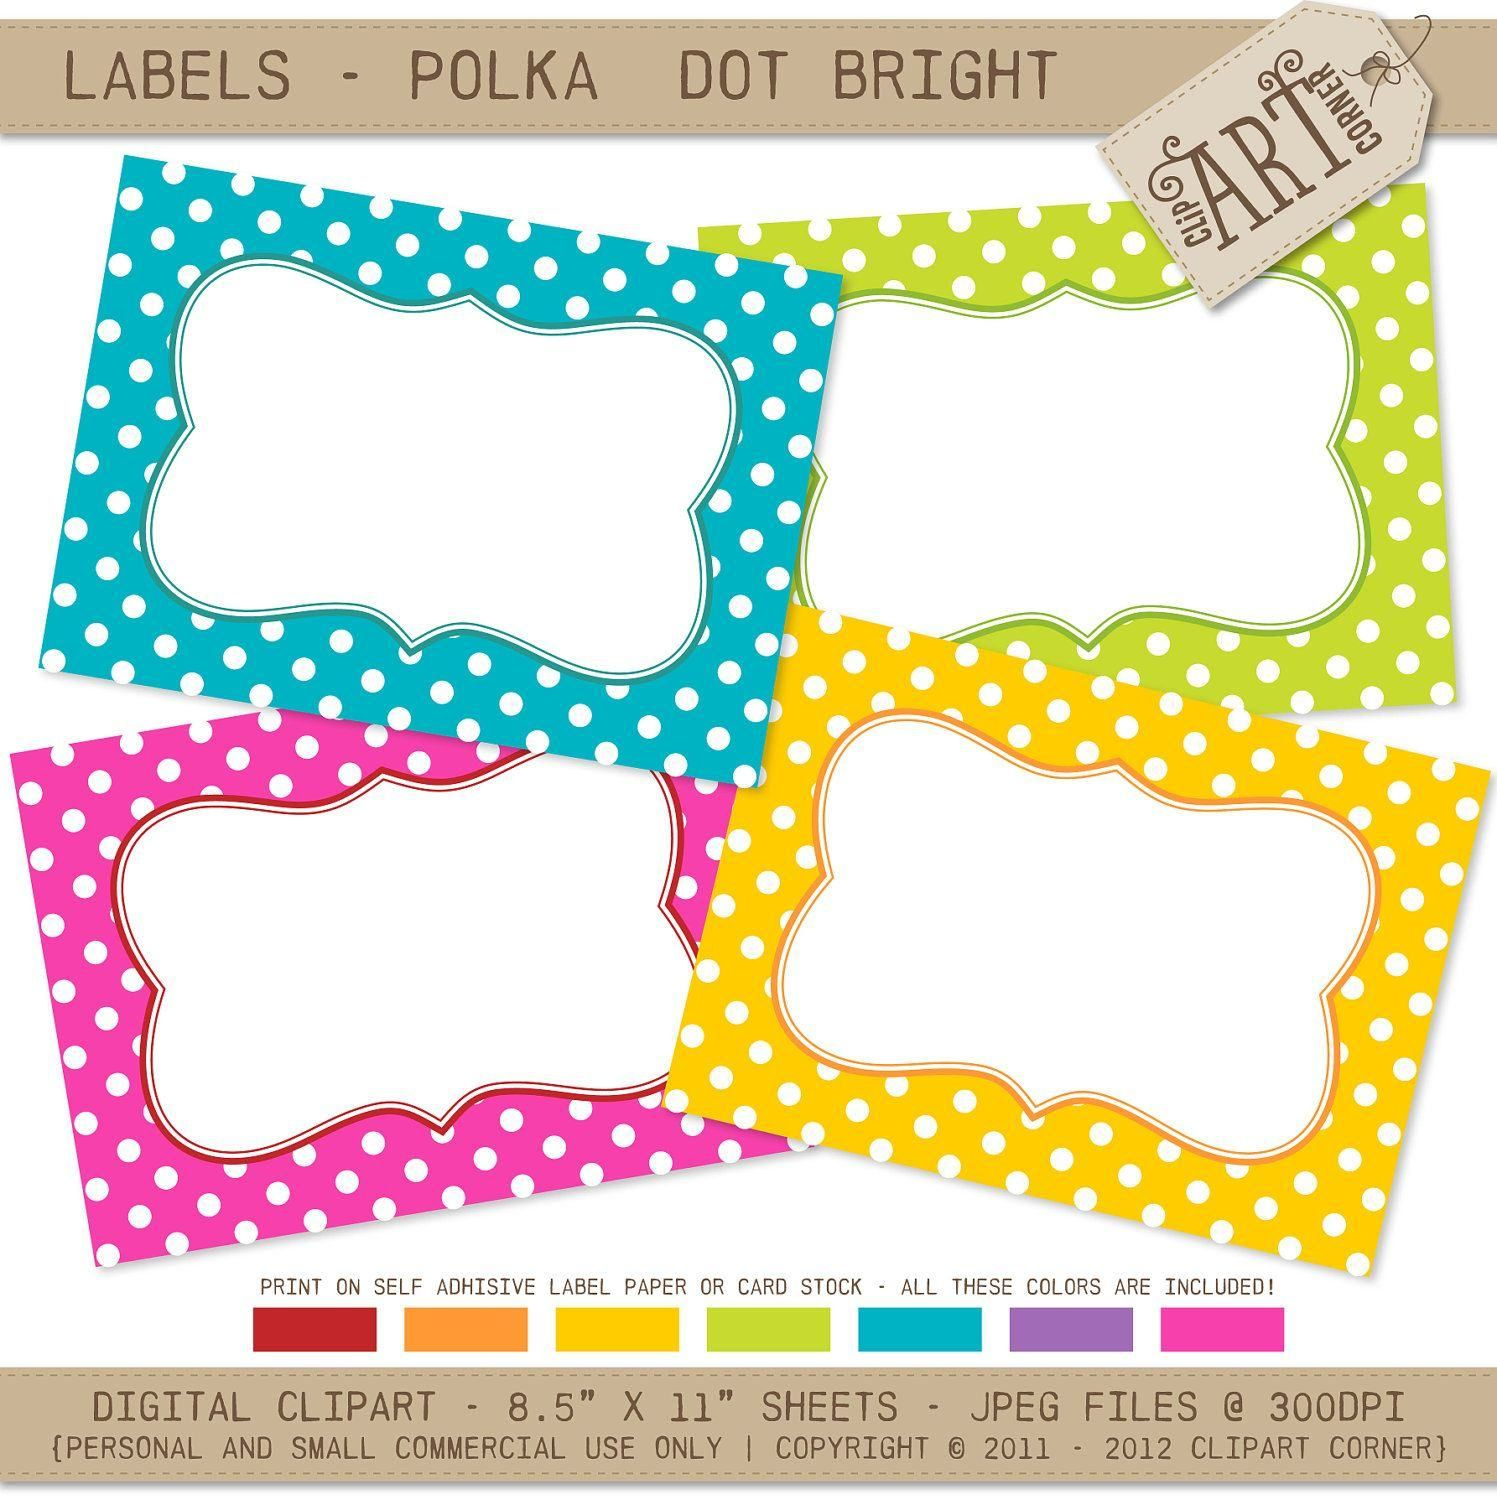 Free Print Labels Template Free Guide Polka Dot Labels Free - Free Printable Name Tags